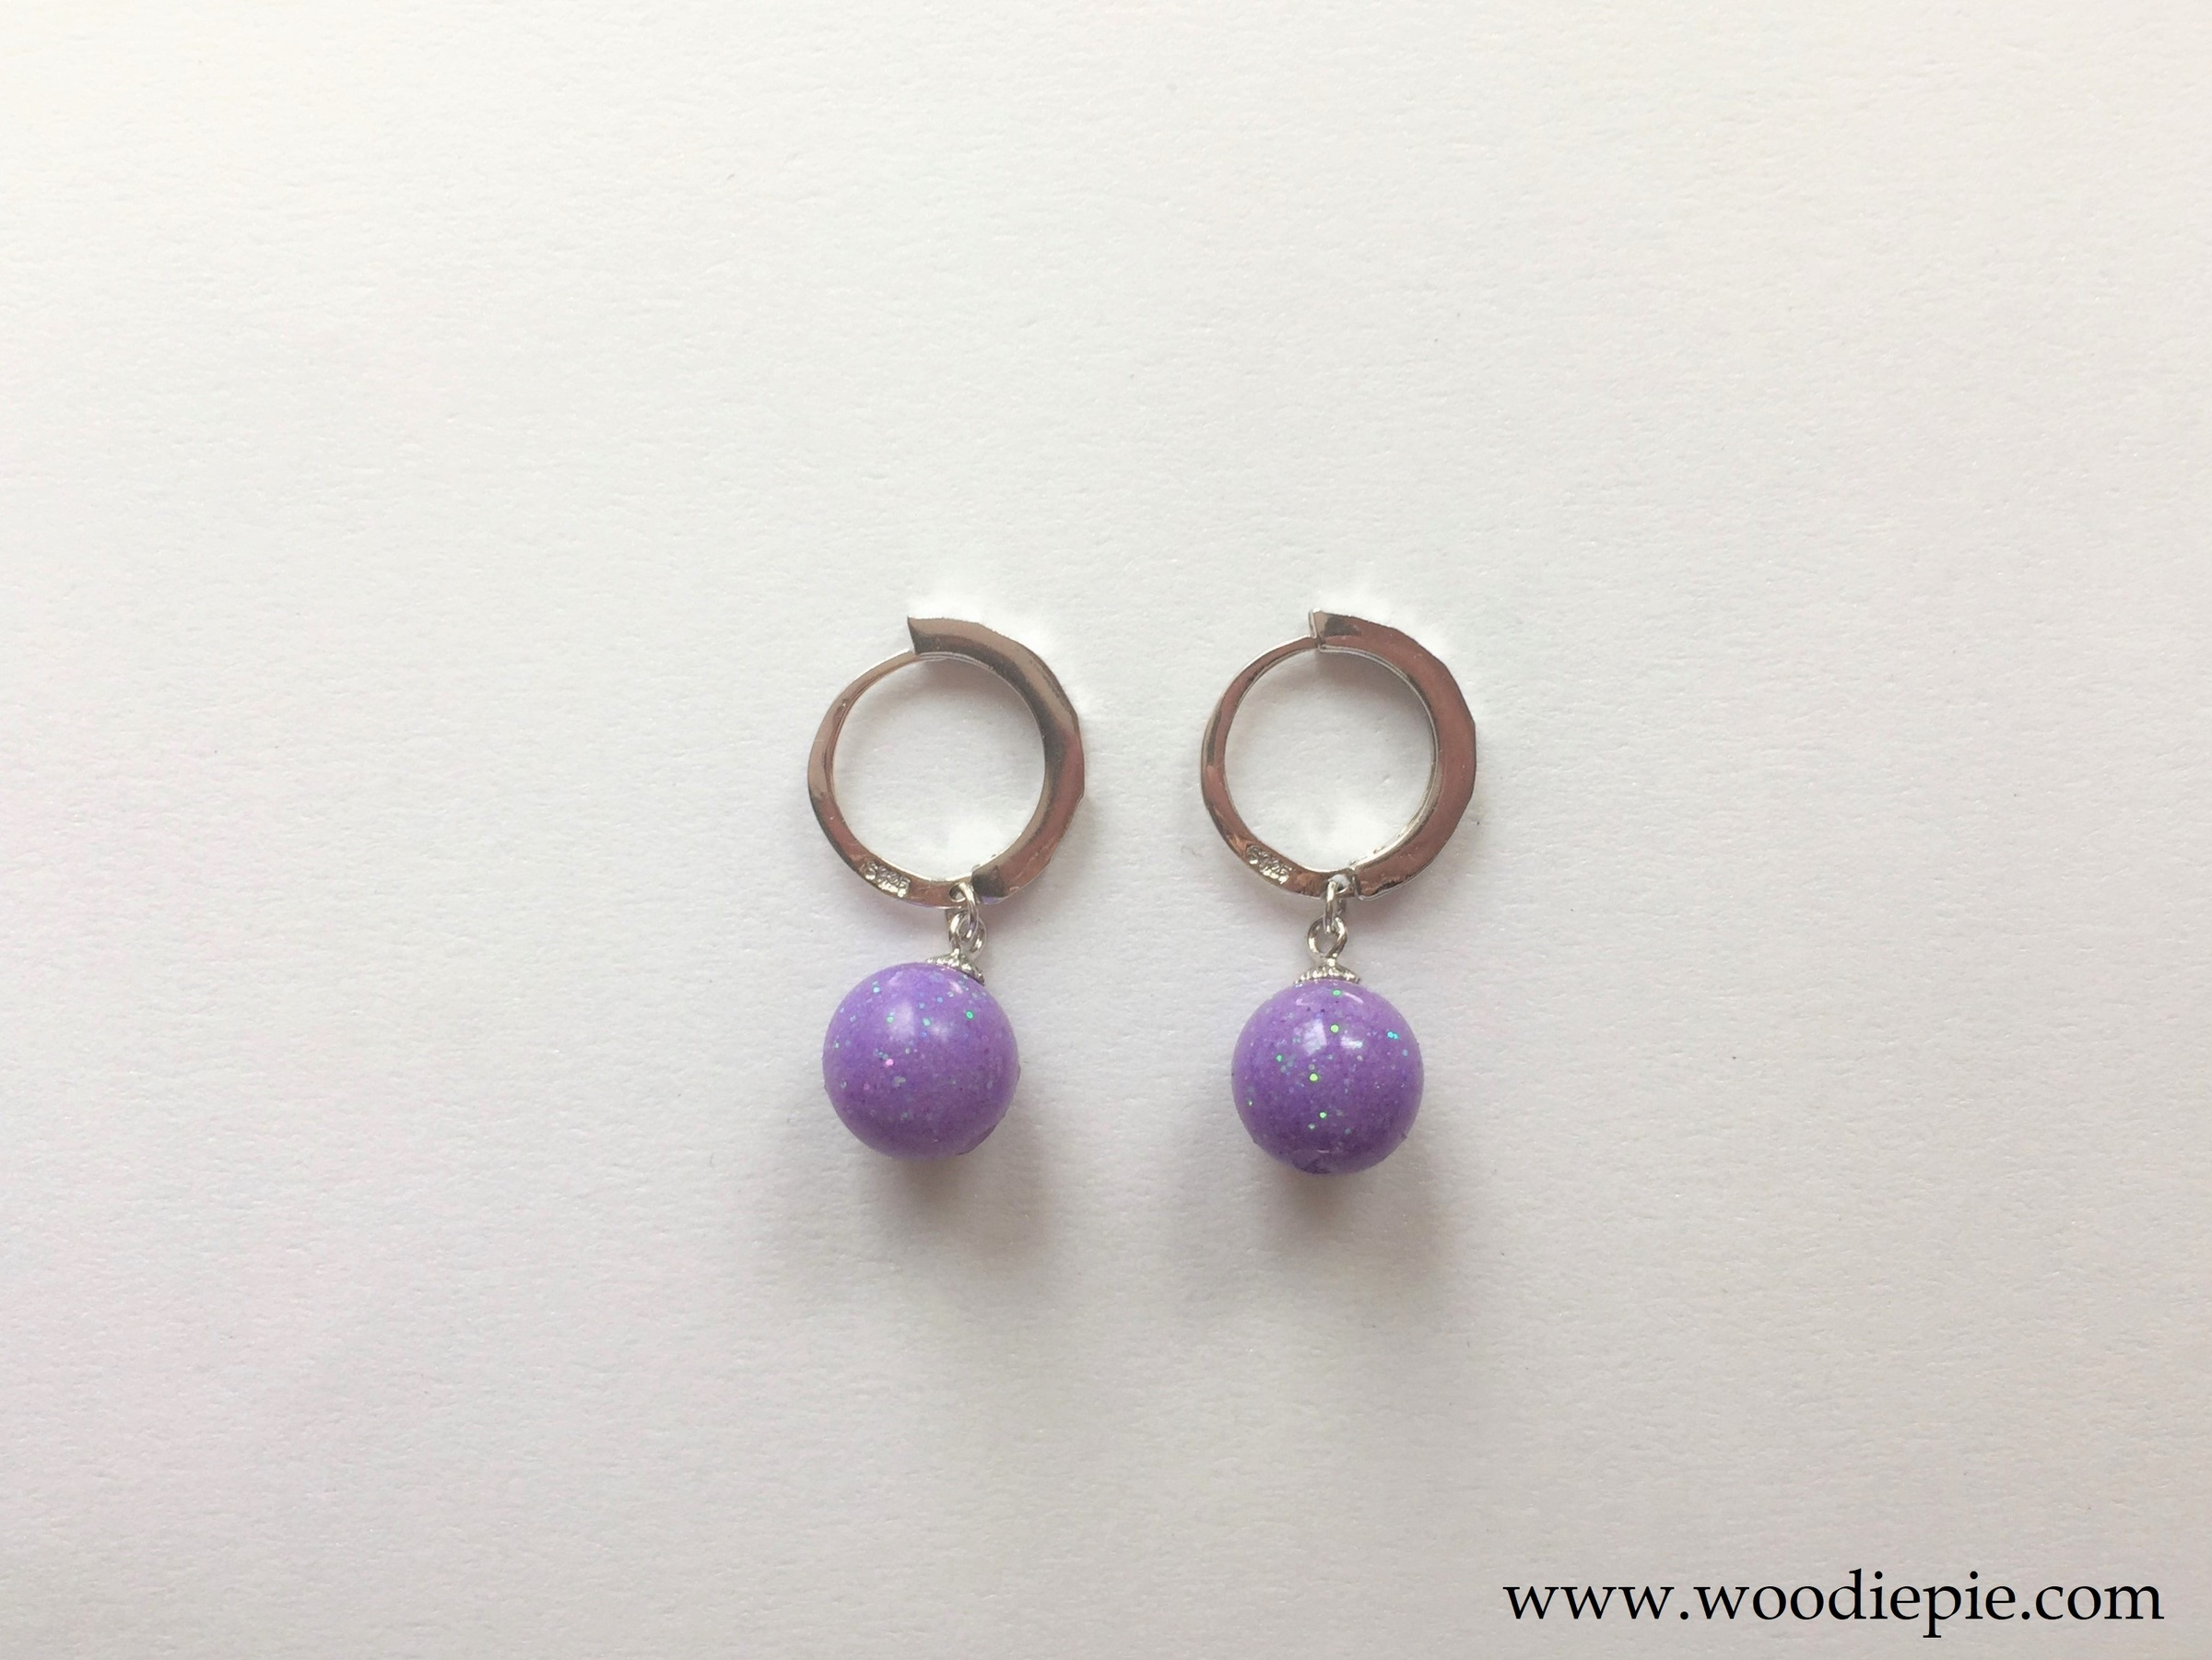 purple earring6 - Copy.JPG